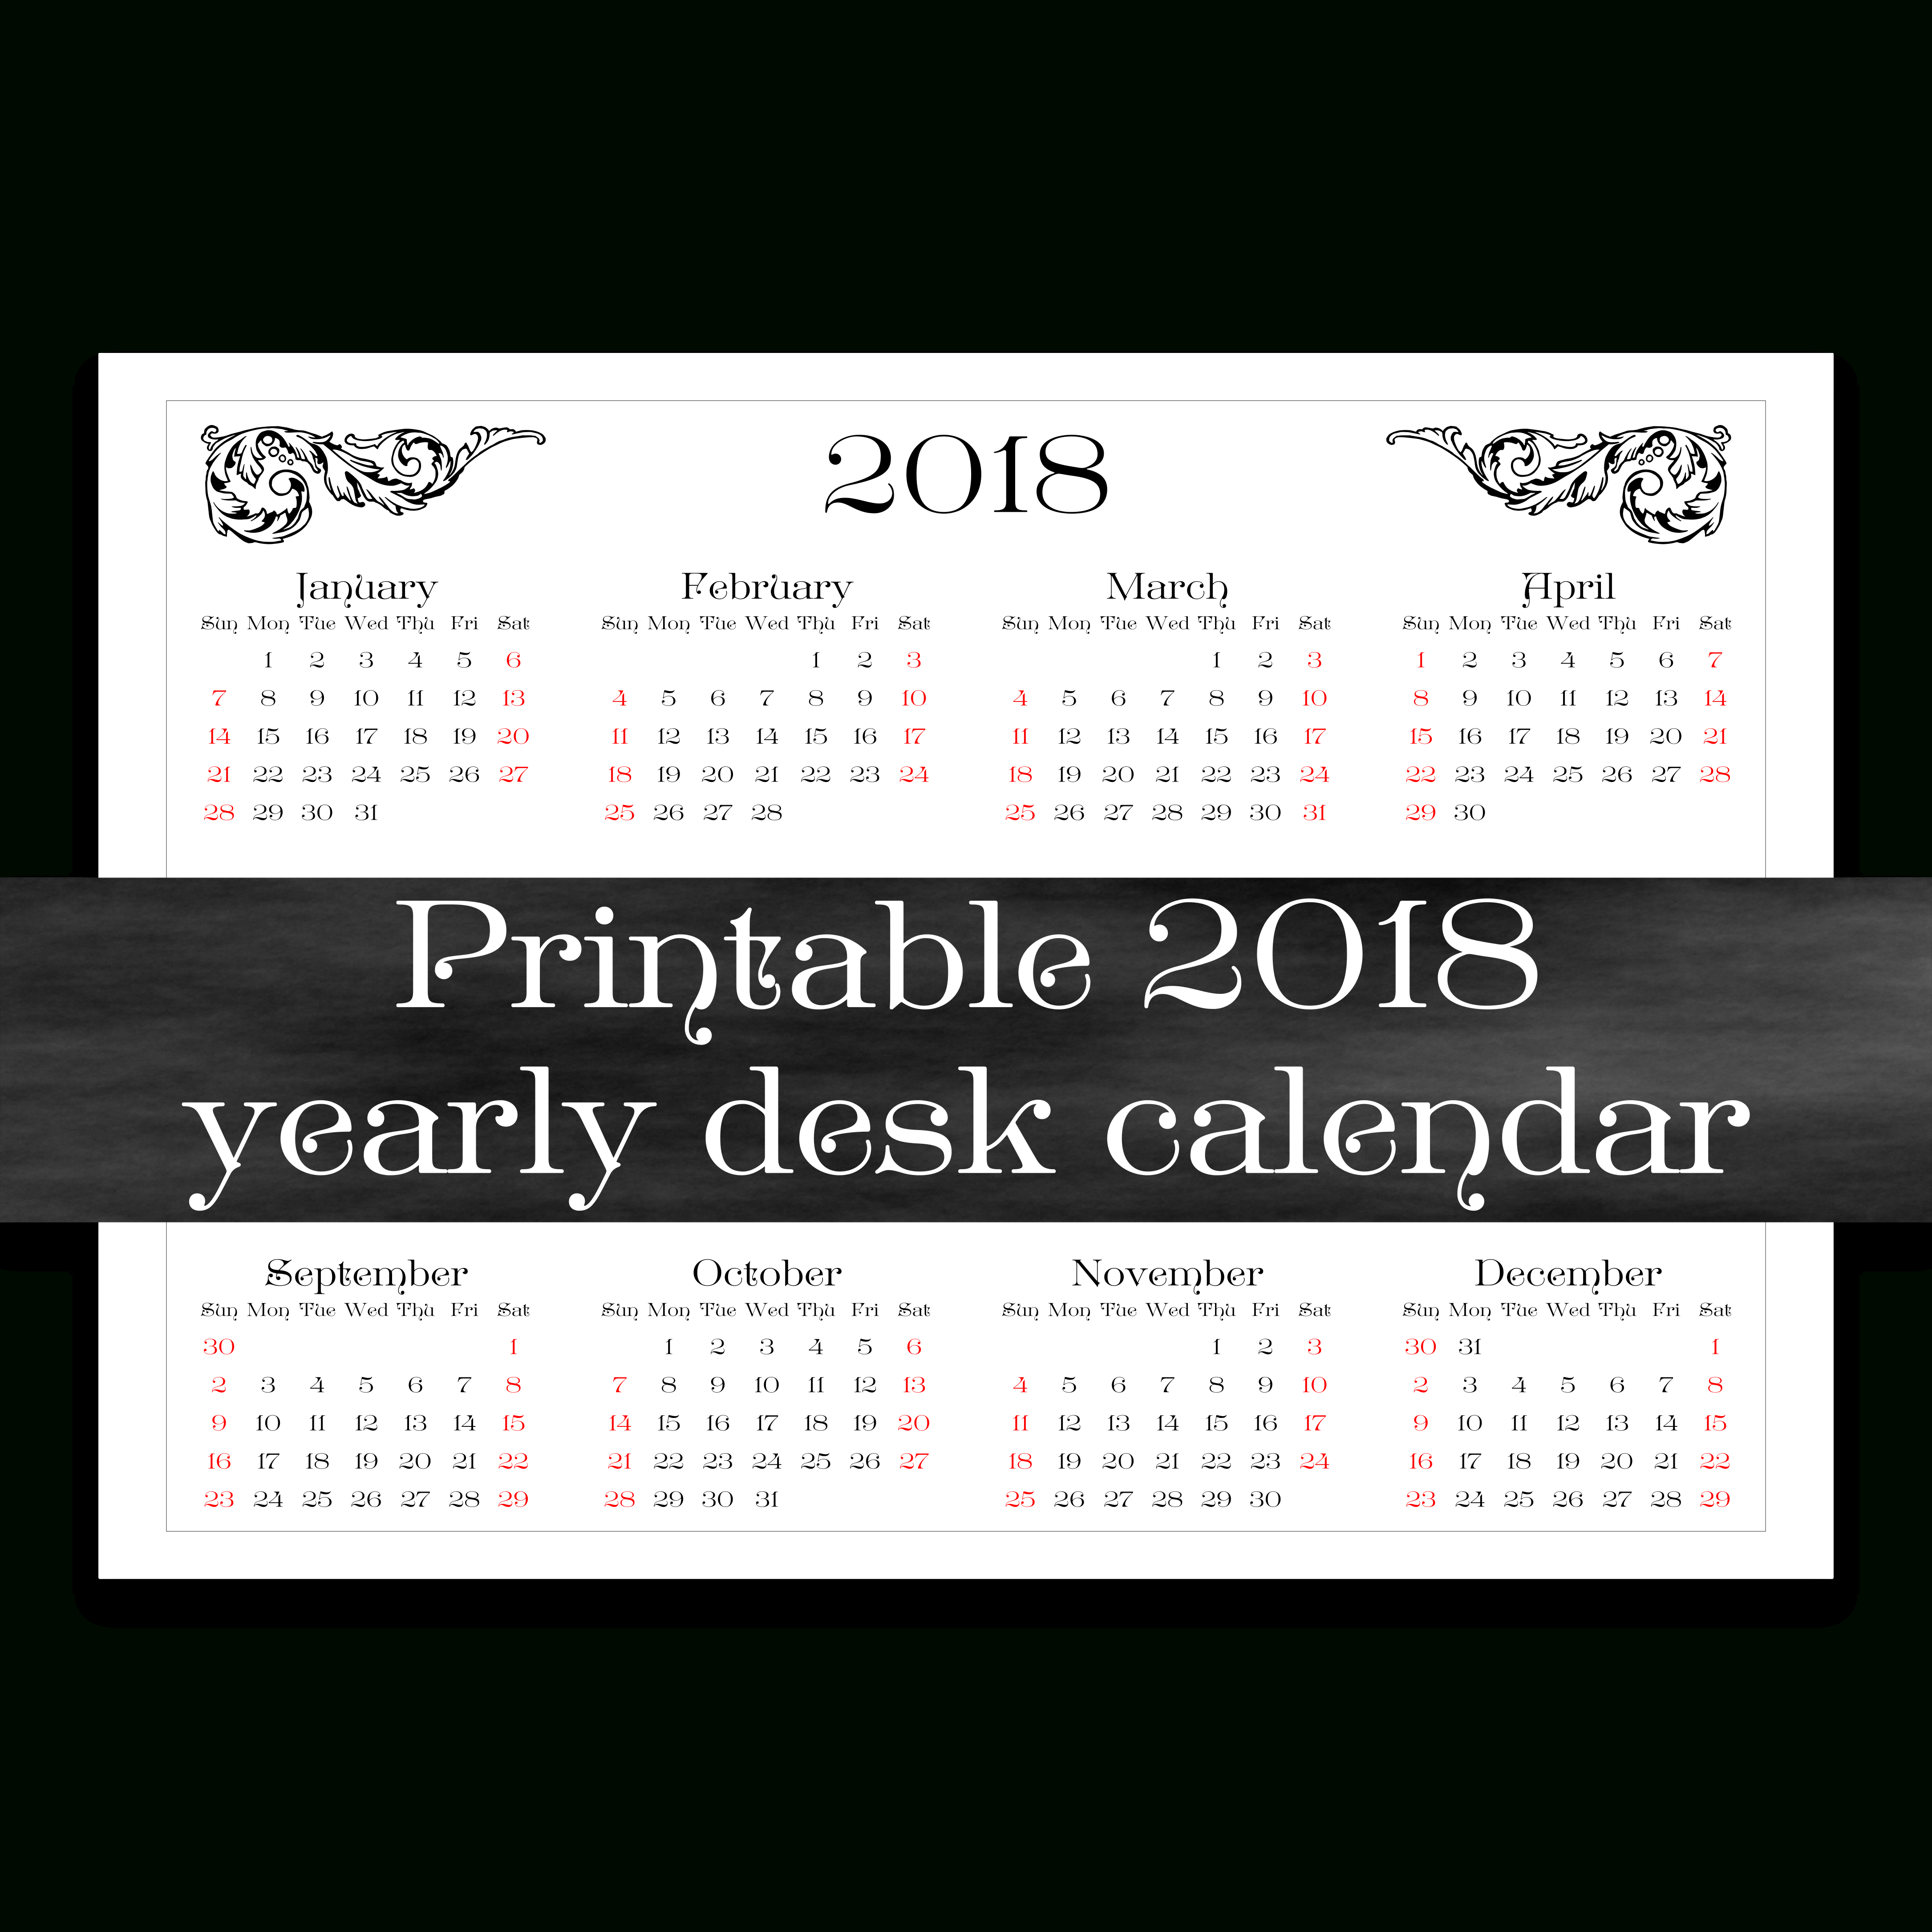 2018 Printable Yearly Desk Calendar | Year At A Glance | A4